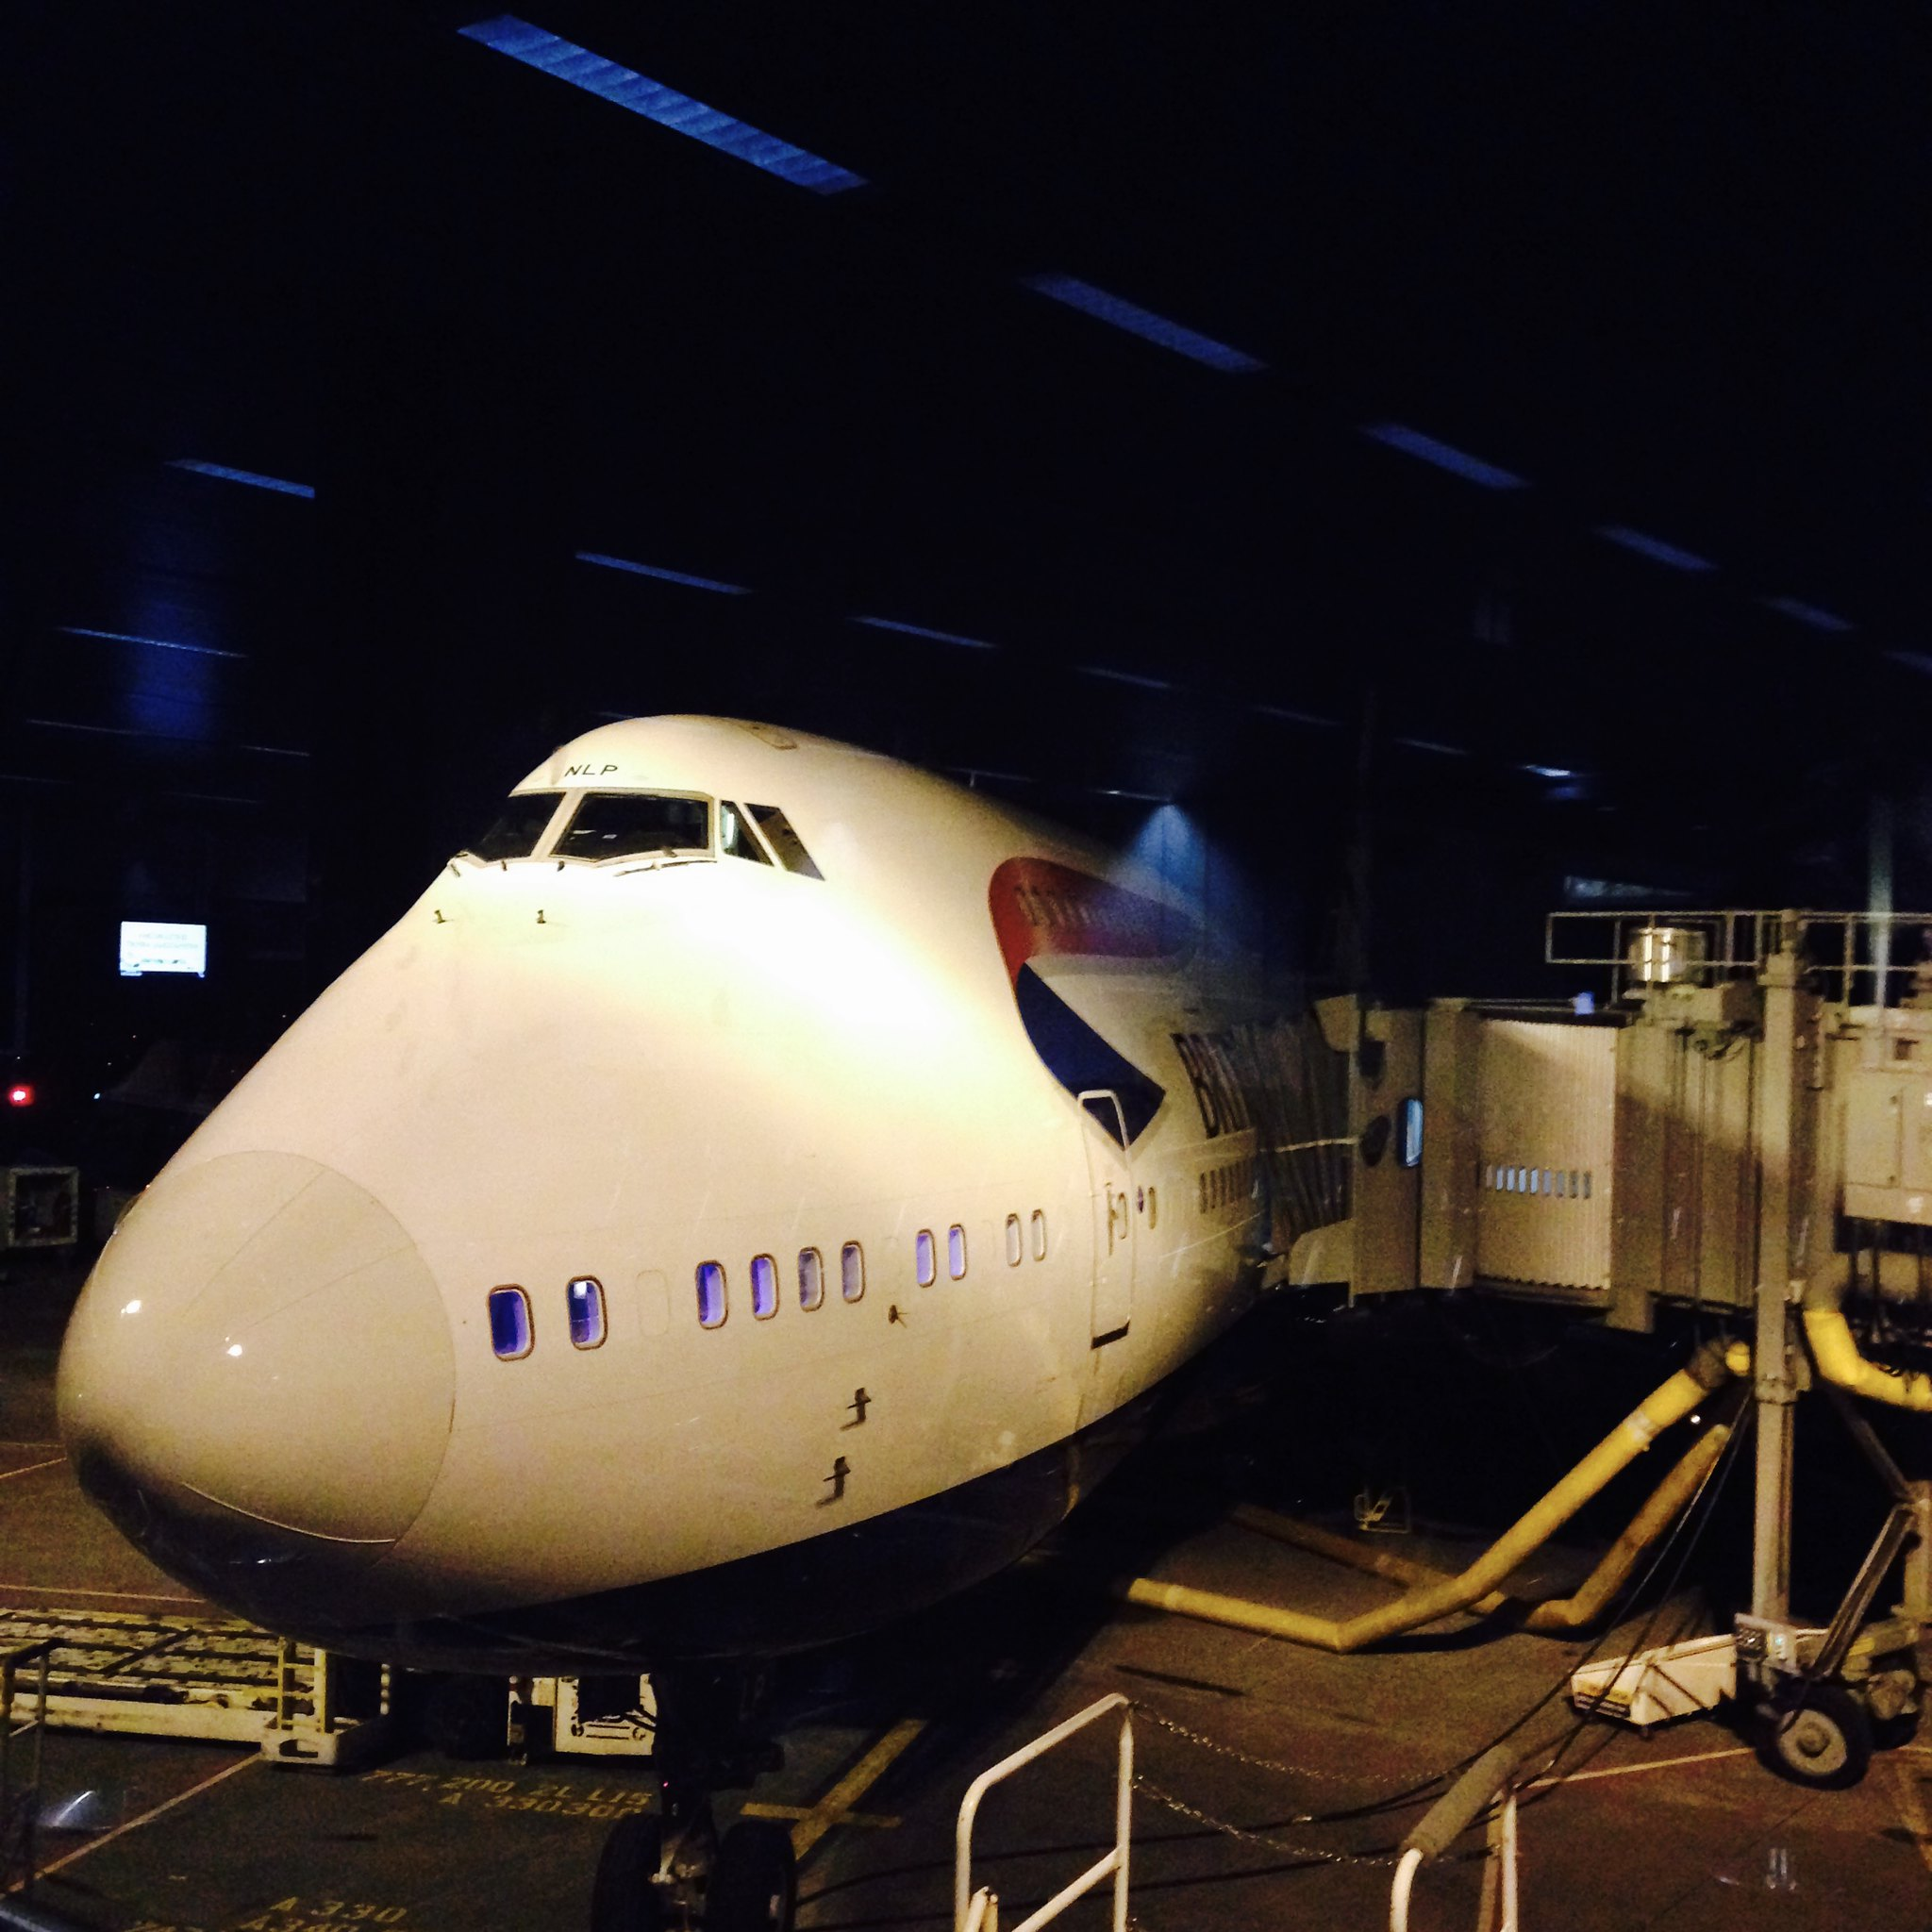 BA48 Seattle - Heathrow -- the beautiful 747